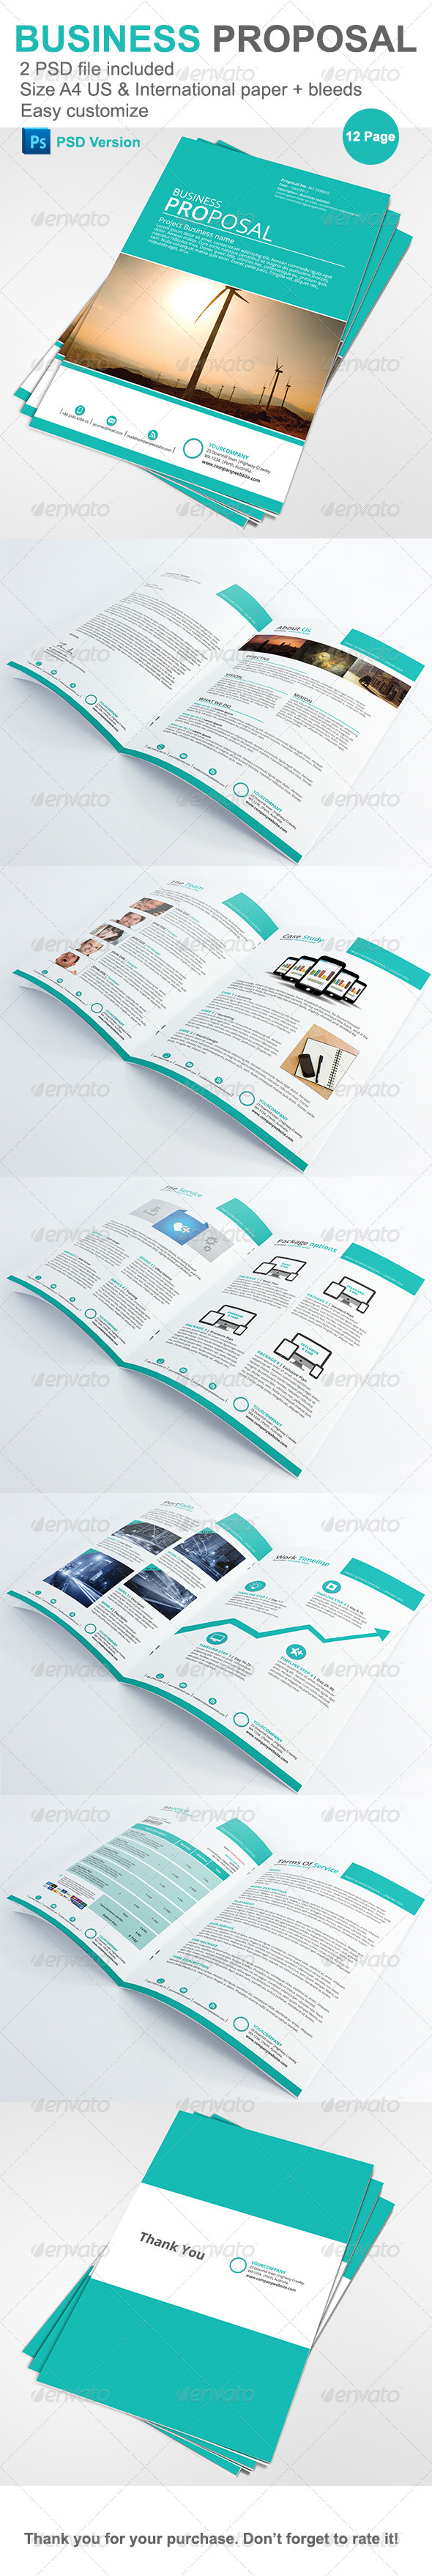 Gstudio Business Proposal Template - Proposals & Invoices Stationery